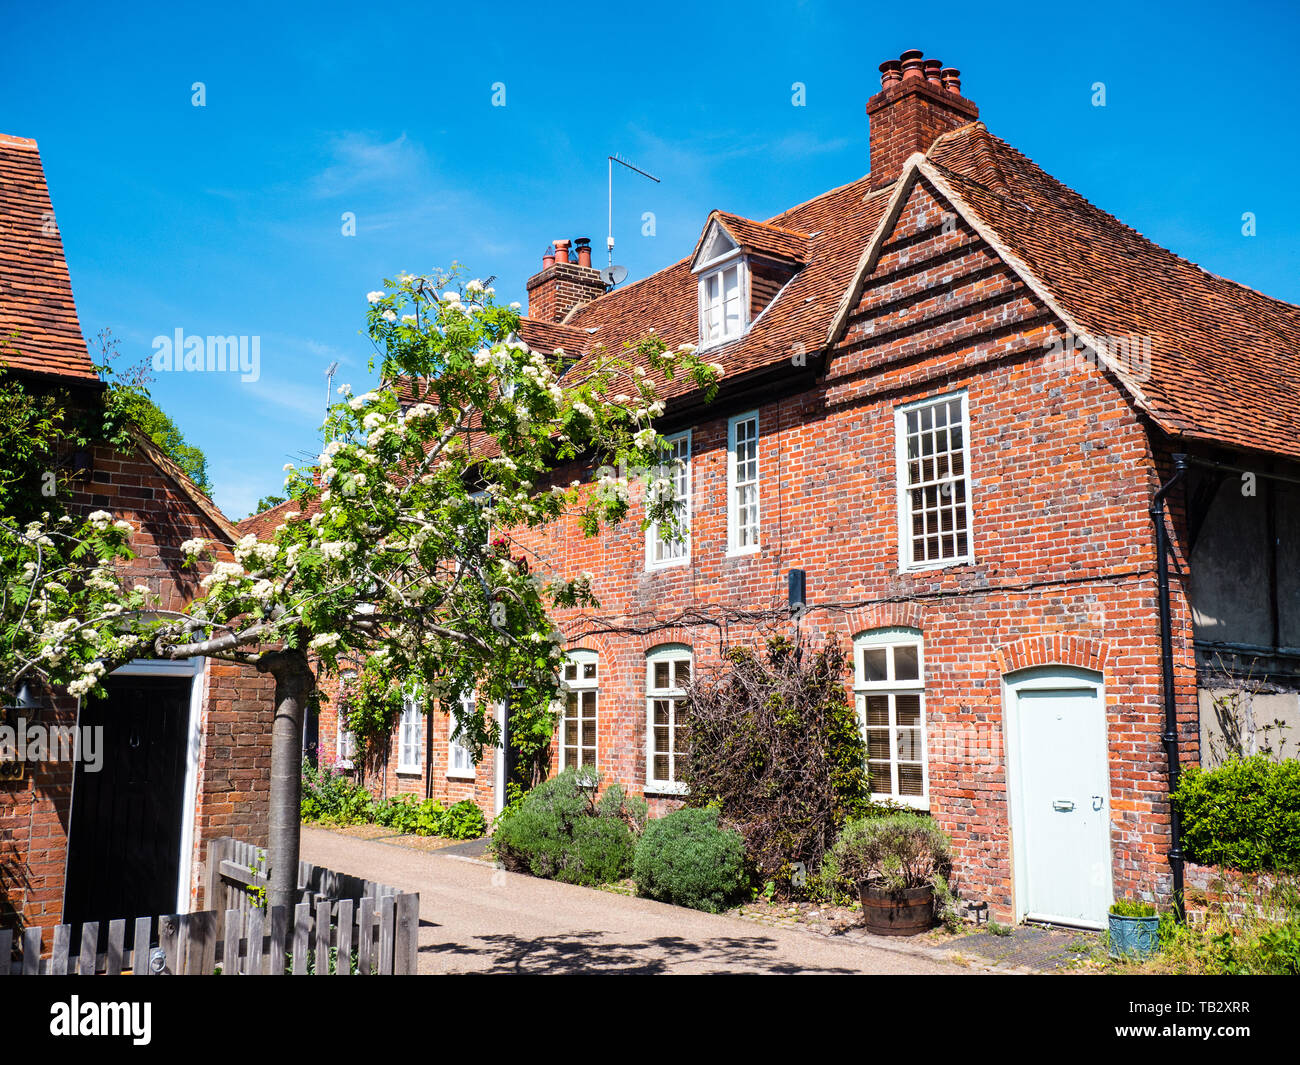 The Village of Hambleden, used as a location in Good Omens TV Show, Buckinghamshire, England, UK, GB. - Stock Image